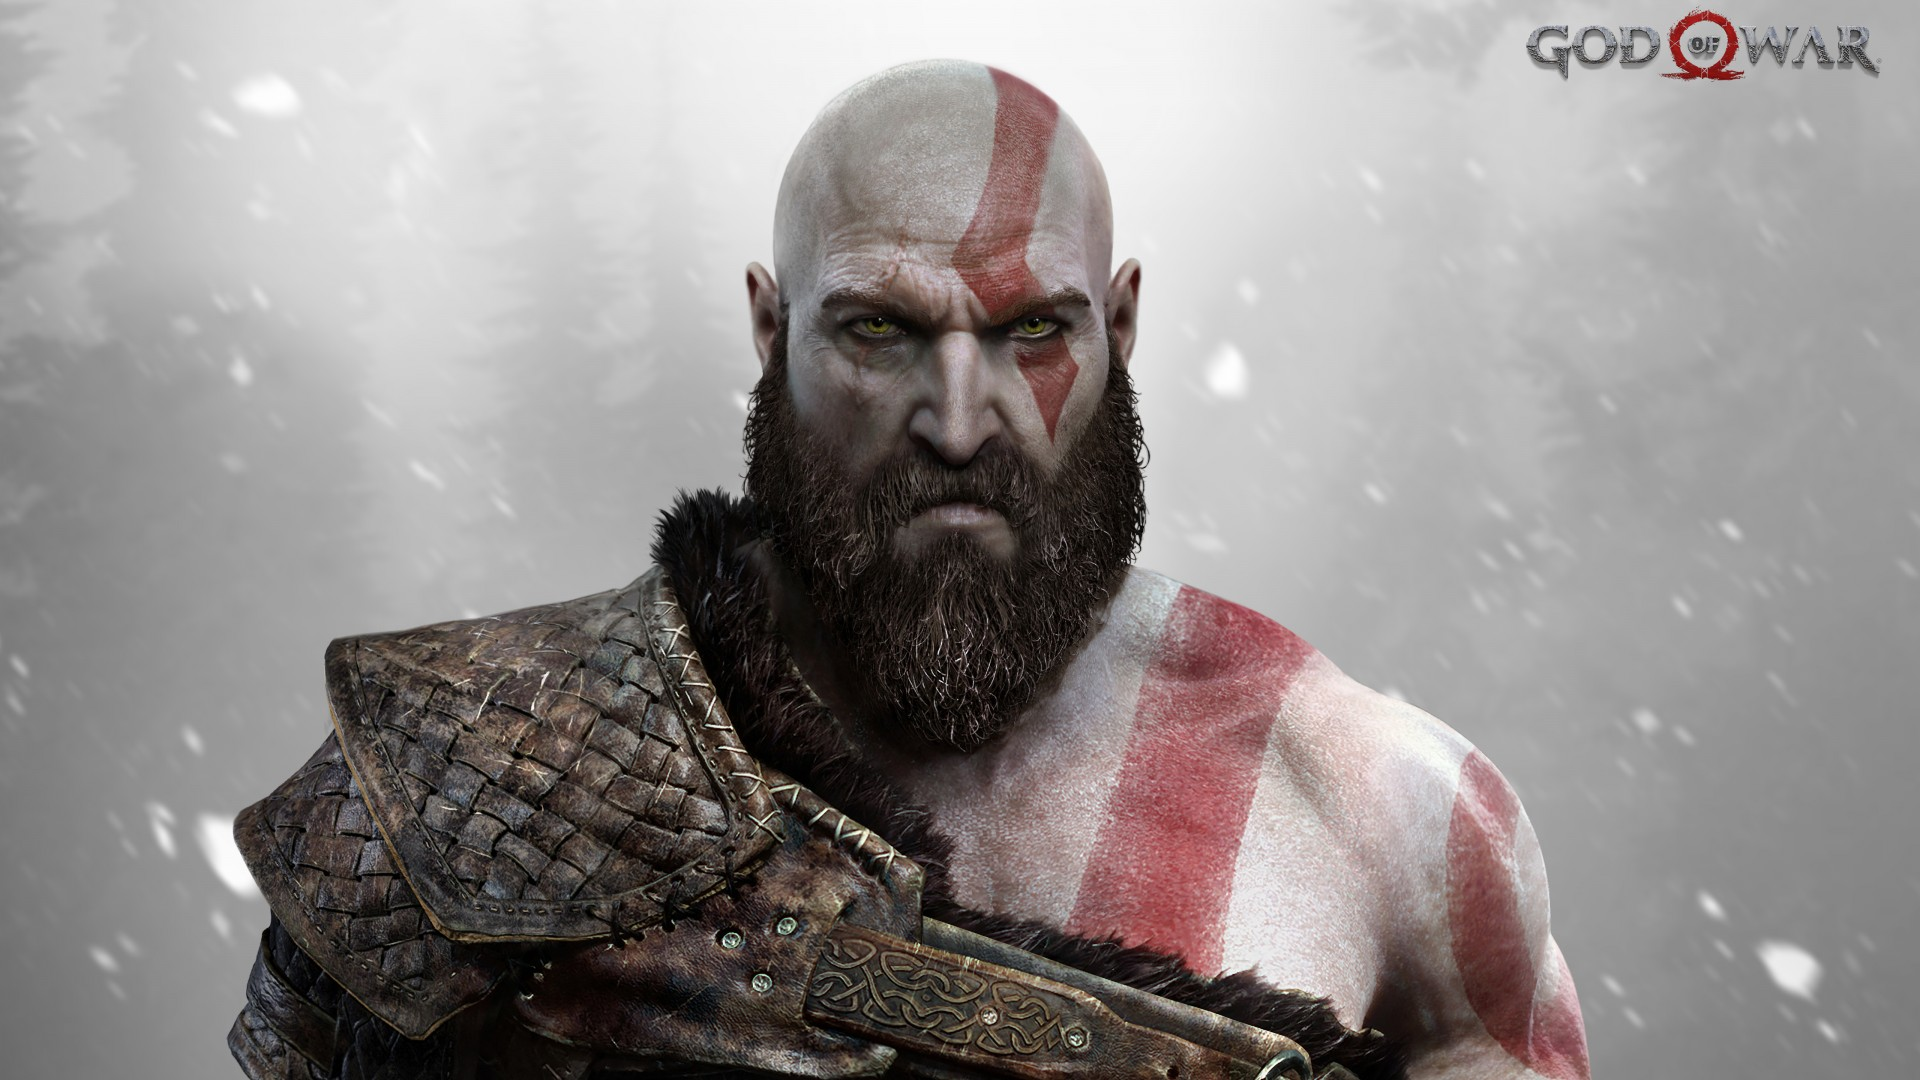 kratos,warfare,god of war,skanda,god,stake,thor,graven image,punt,biz,ps4,of,state of war,games,deity,war,idol